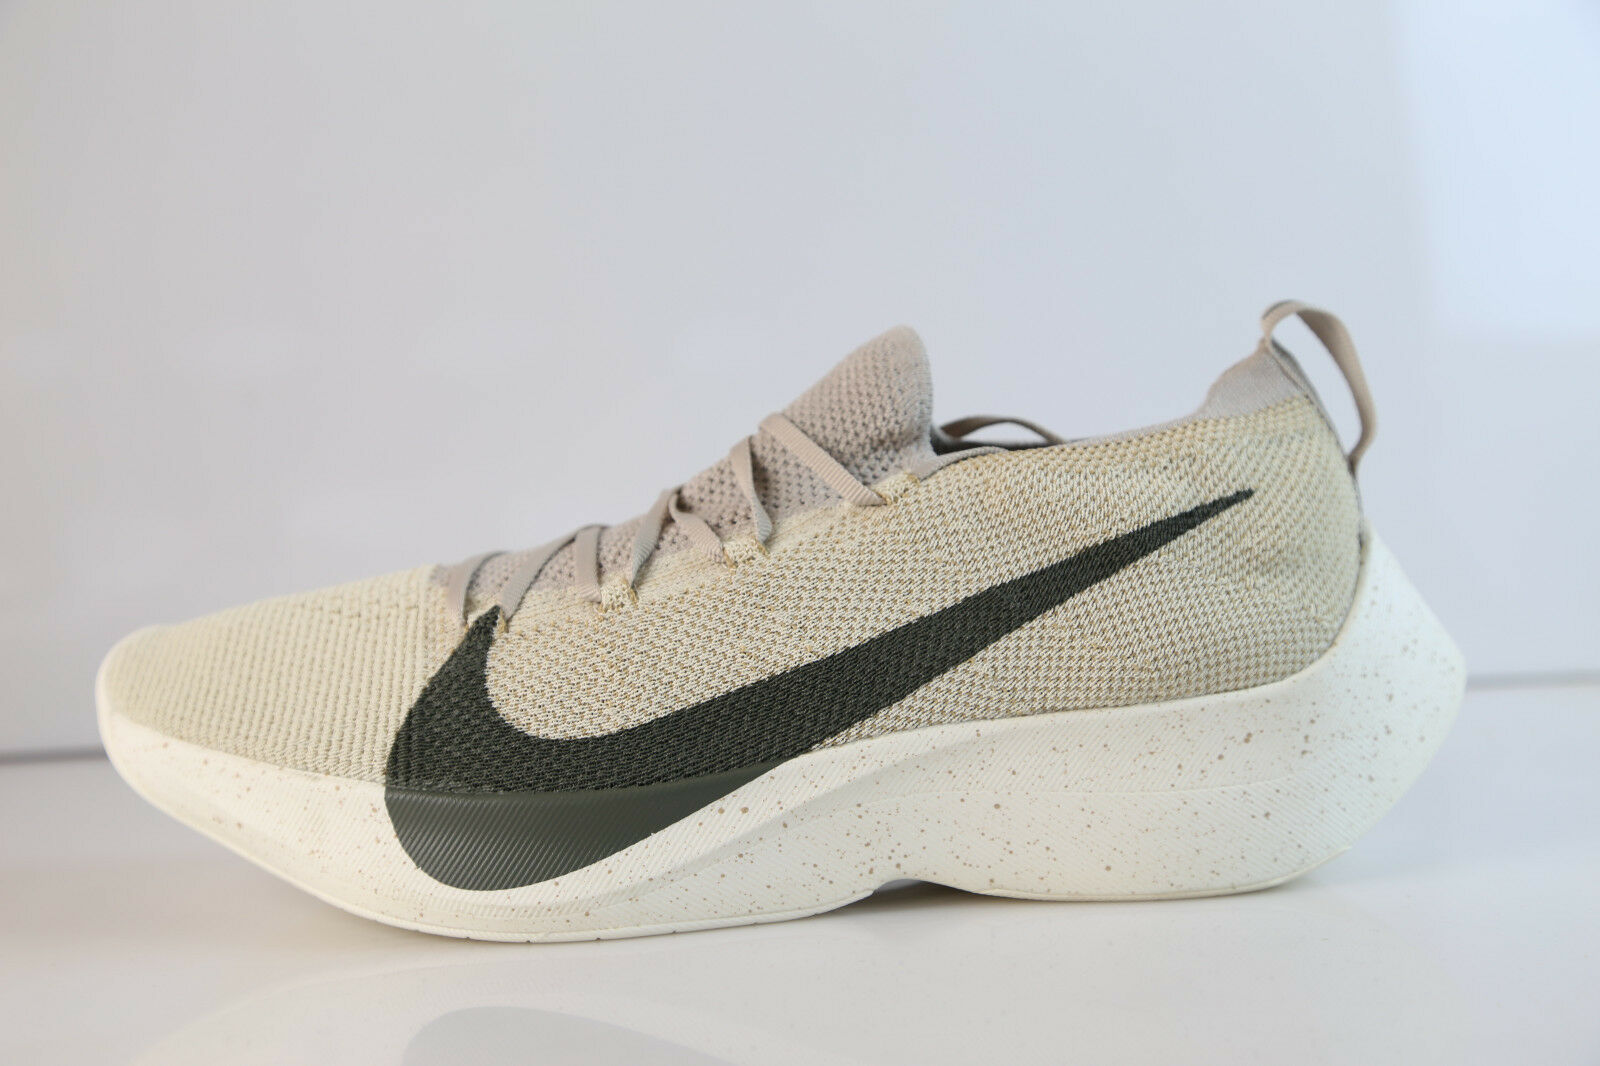 Nike Vapor Street Elite Flyknit String River Rock AQ1763-2018 8-13 fk air The latest discount shoes for men and women